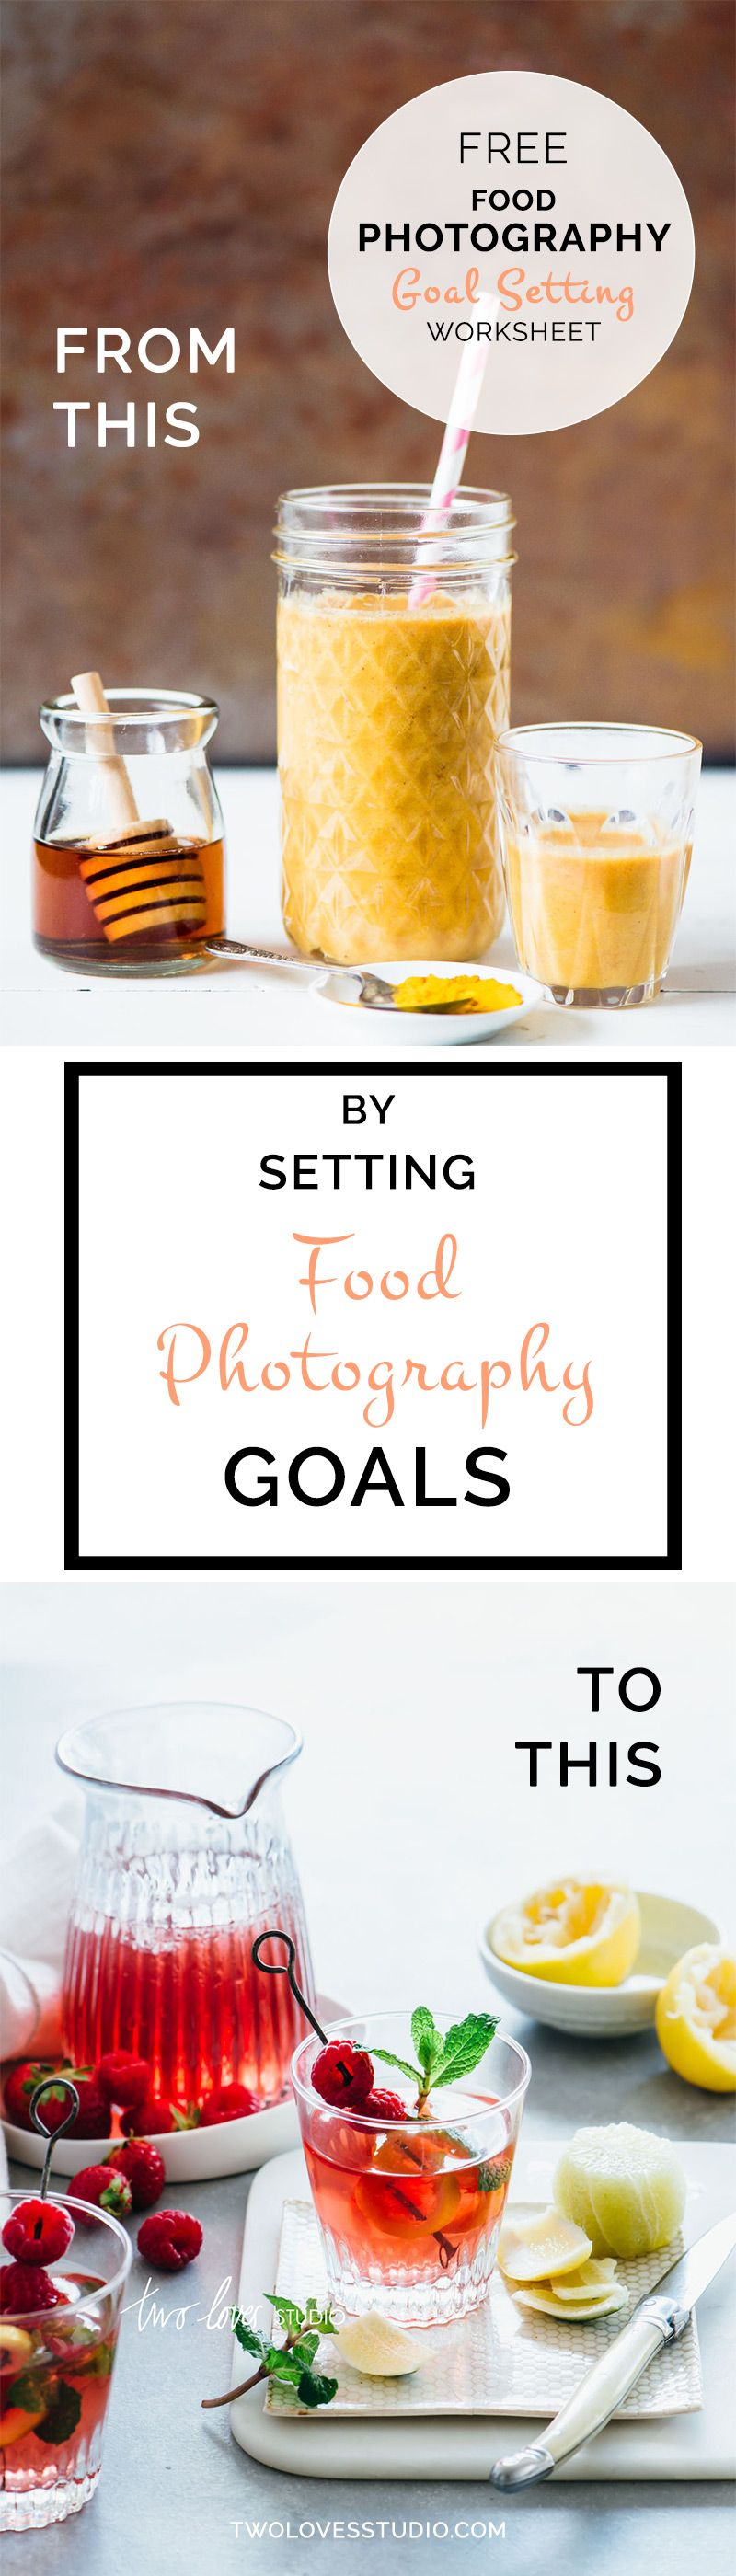 Free Food Photography Goal Setting Worksheet | Click to read the 4 actions that will help you set intentional goals to create better food photography.